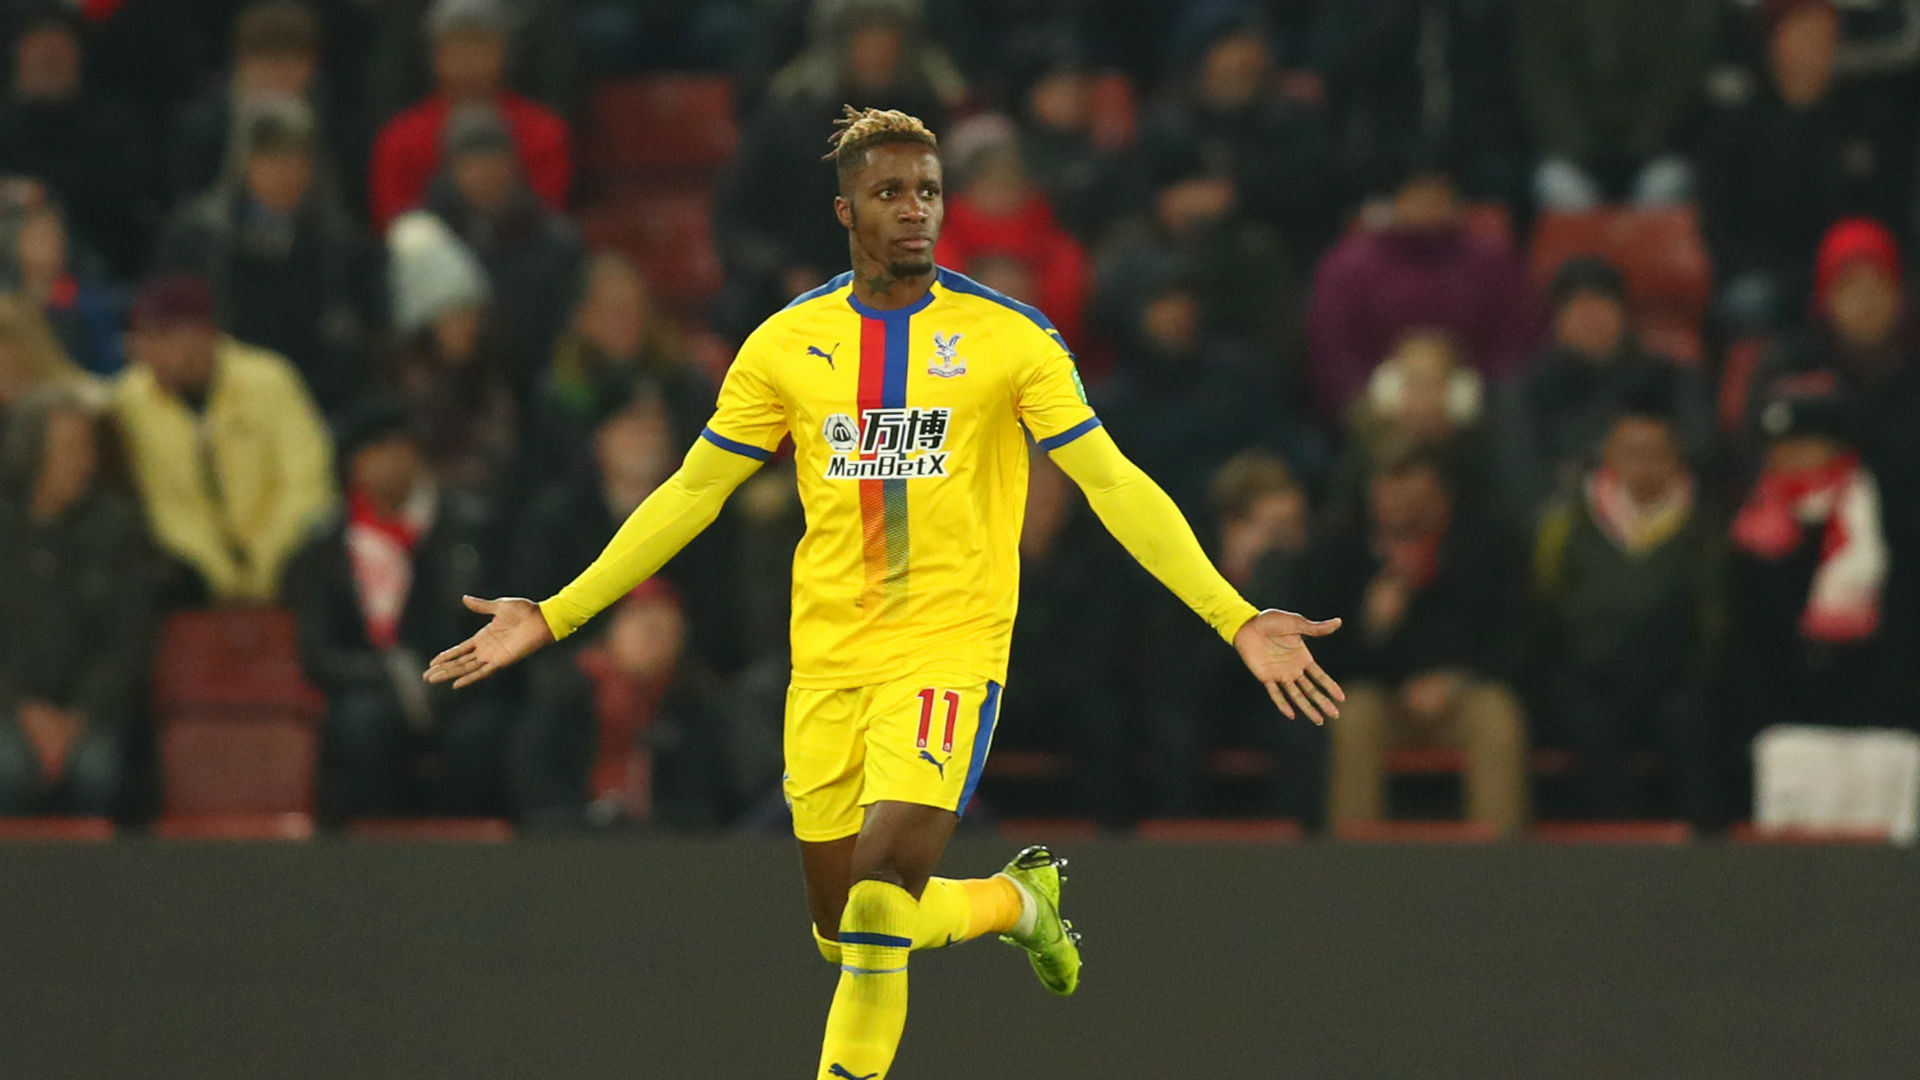 Southampton 1 Crystal Palace 1: Zaha sent off as Ward-Prowse late show salvages point